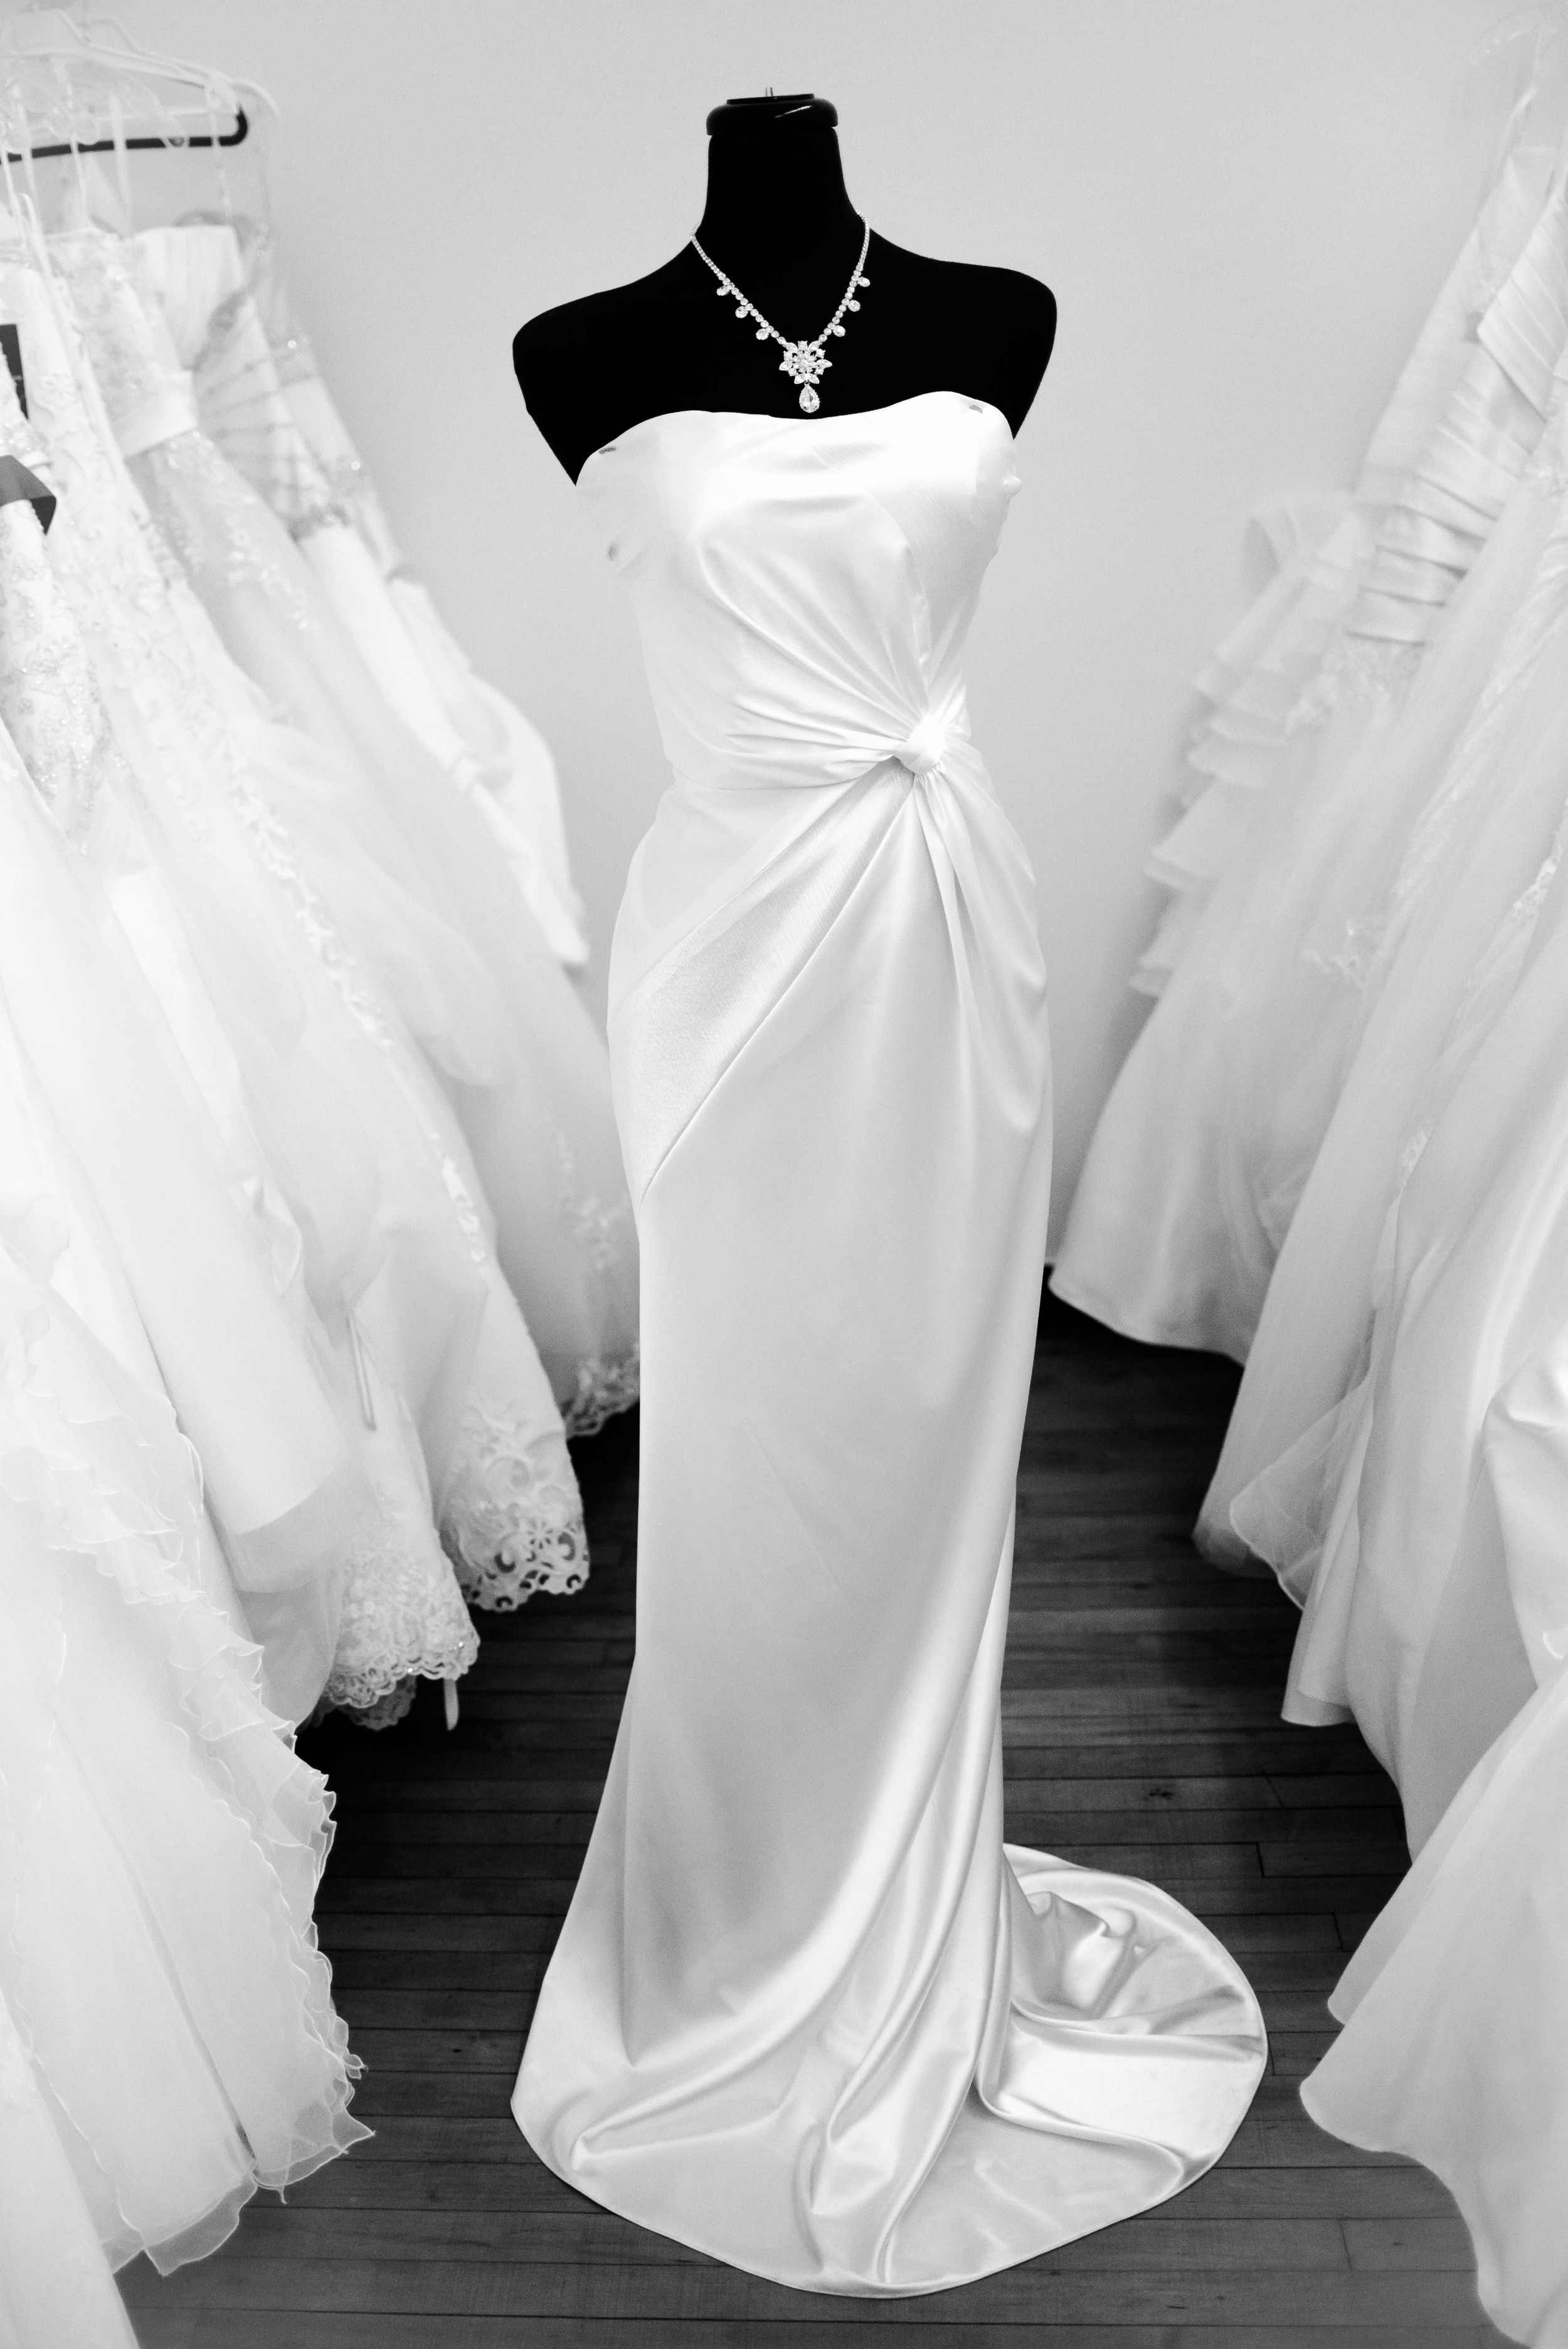 Custom designed gown by Dawn, fits like a glove in Old Hollywood style